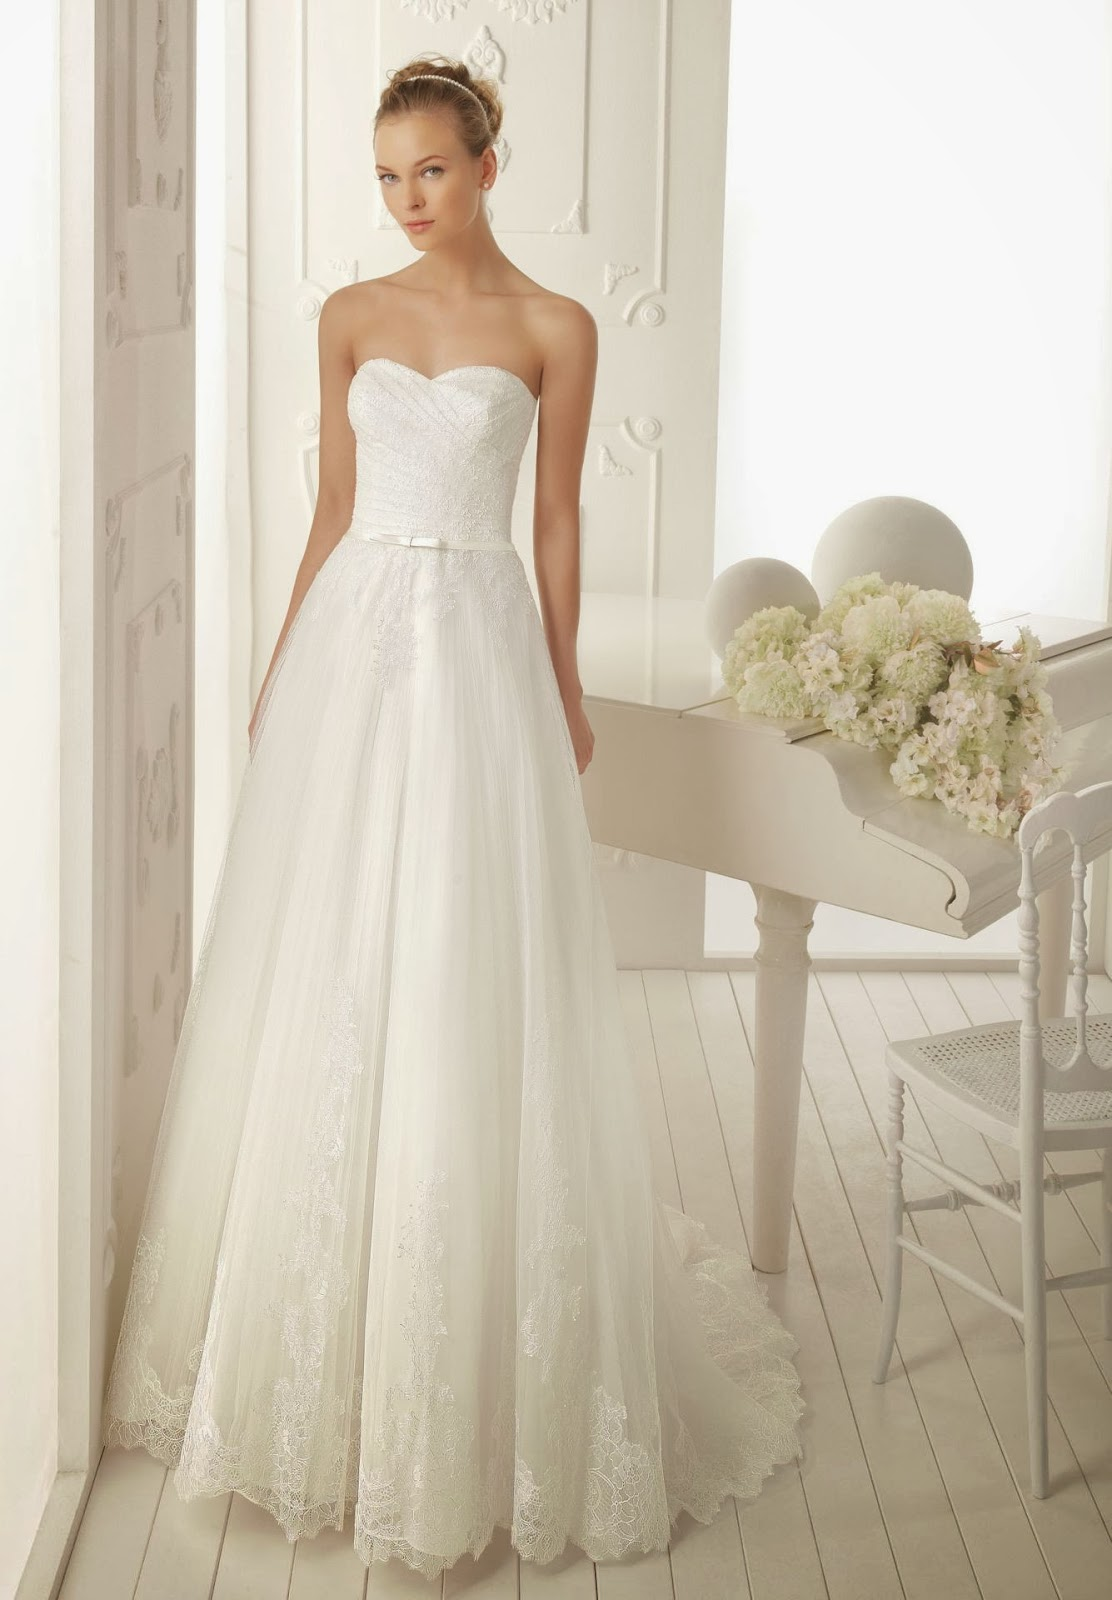 WhiteAzalea Simple Dresses Simple Lace Wedding Dresses